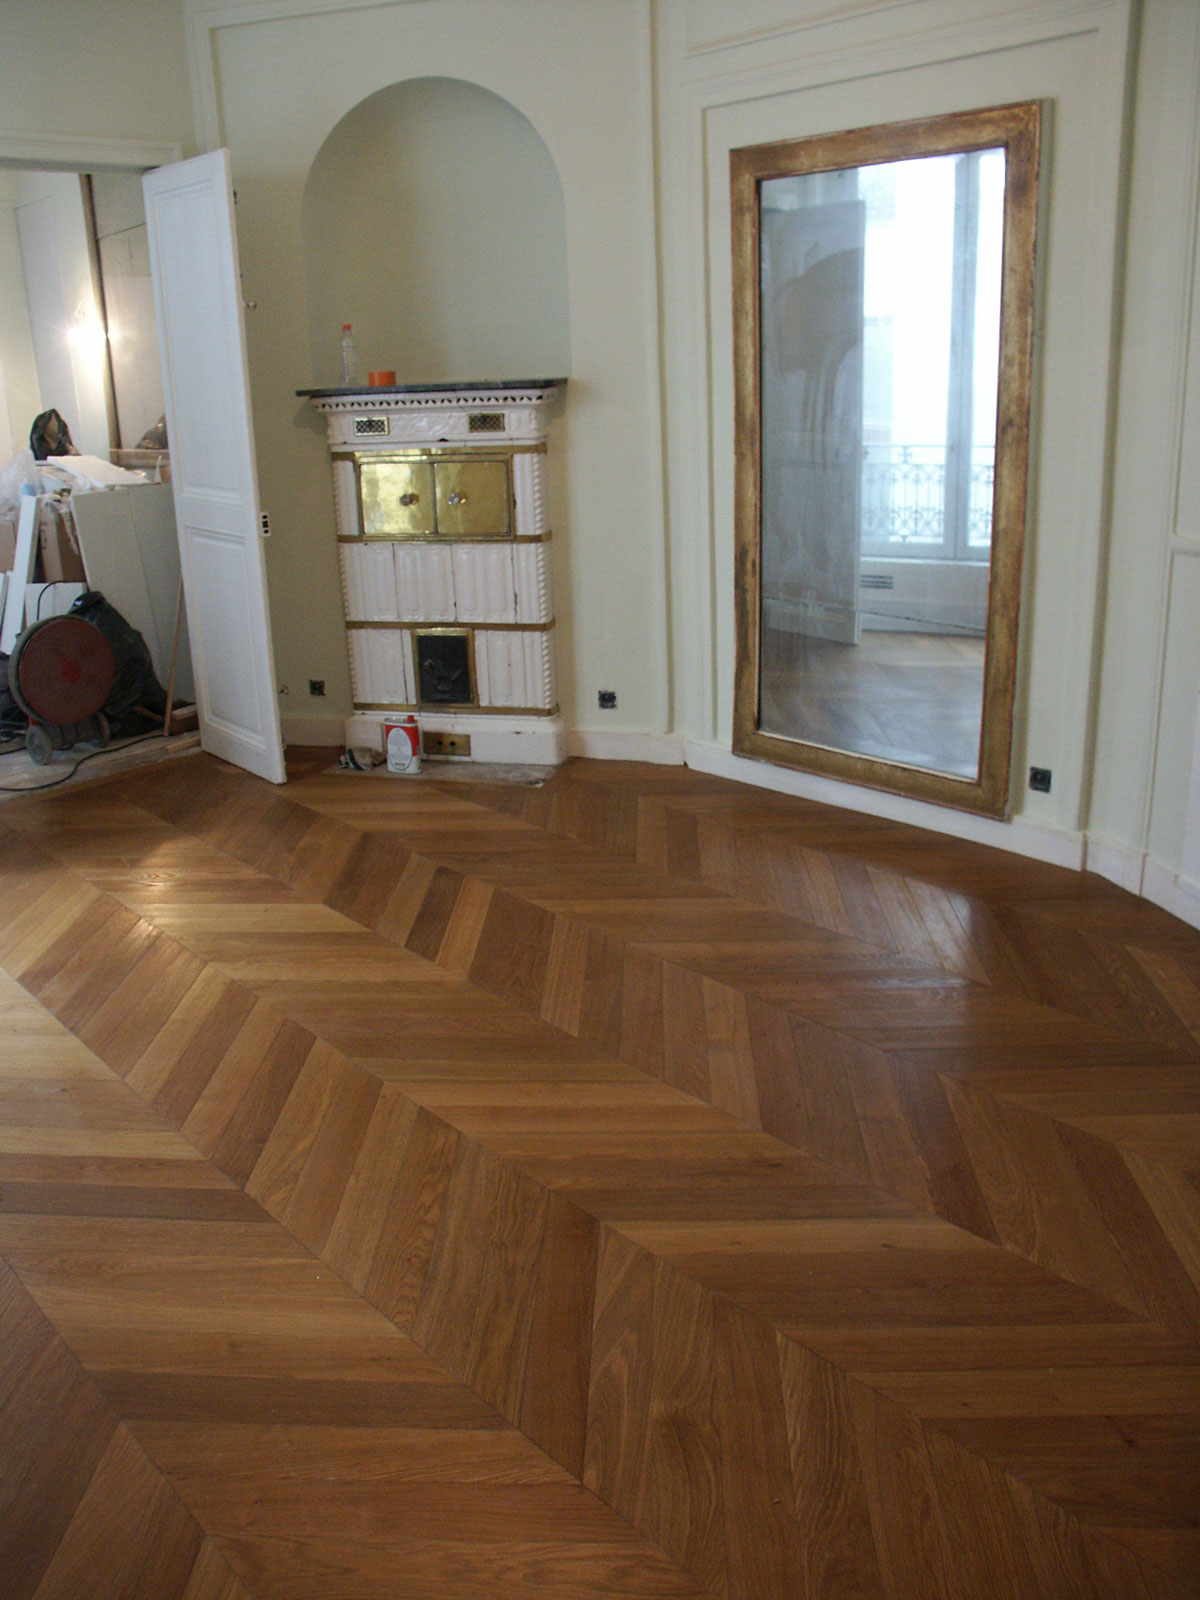 Parquet point de hongrie du parquet point de hongrie for Carrelage parisien